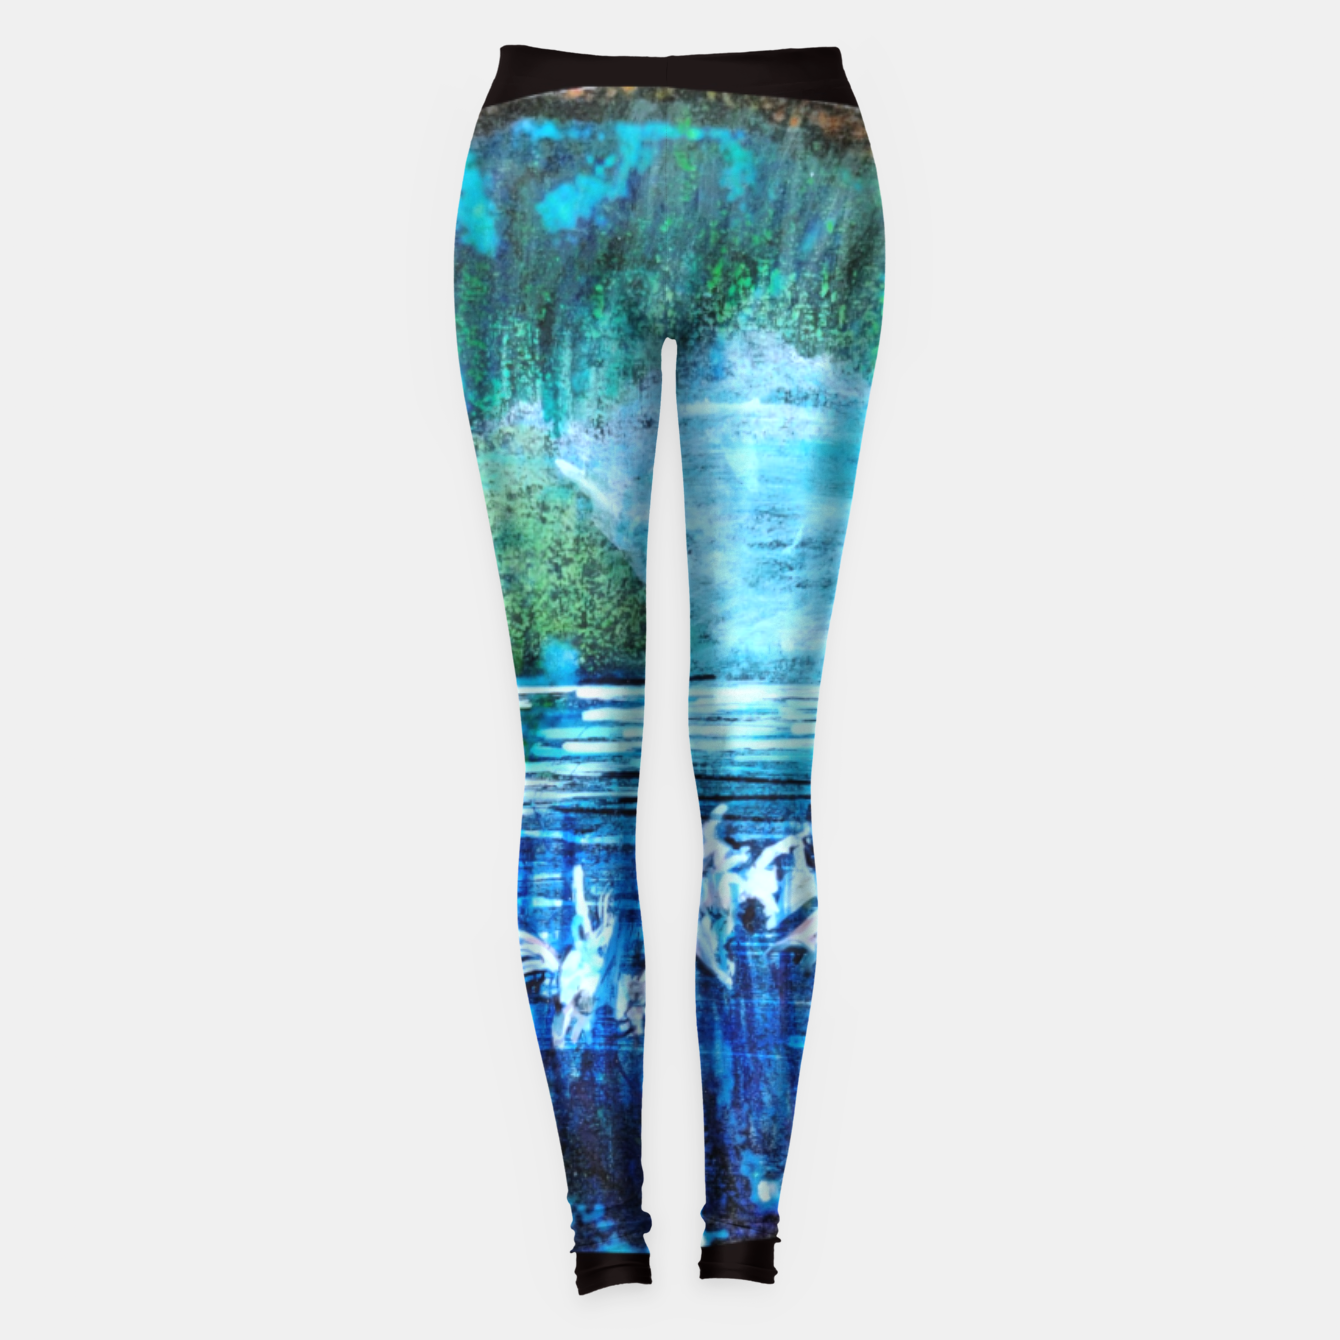 Image of lost and found world 2 brain art for paratissima 19 Yulia A Korneva mri immage Leggings - Live Heroes